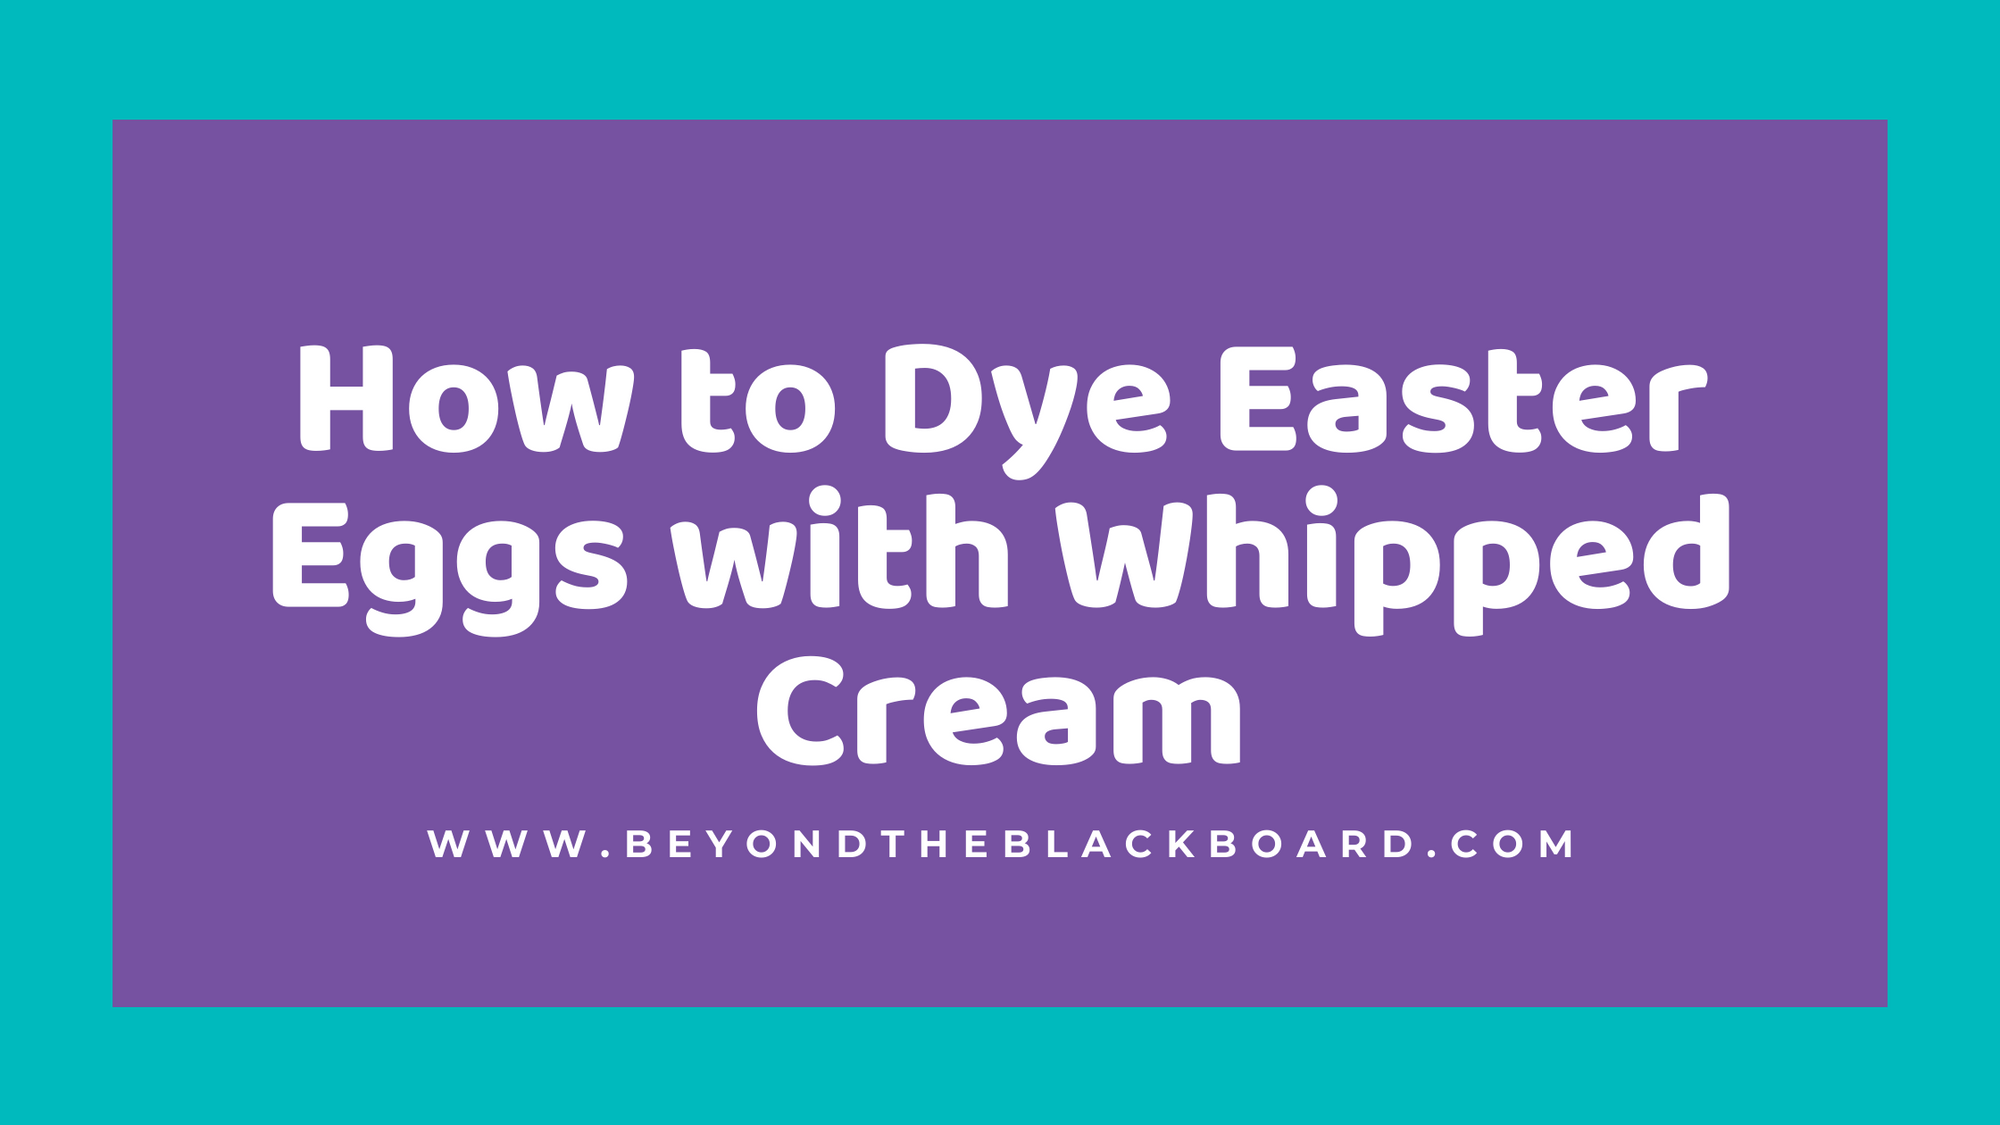 How to Dye Easter Eggs with Whipped Cream, www.beyondtheblackboard.com